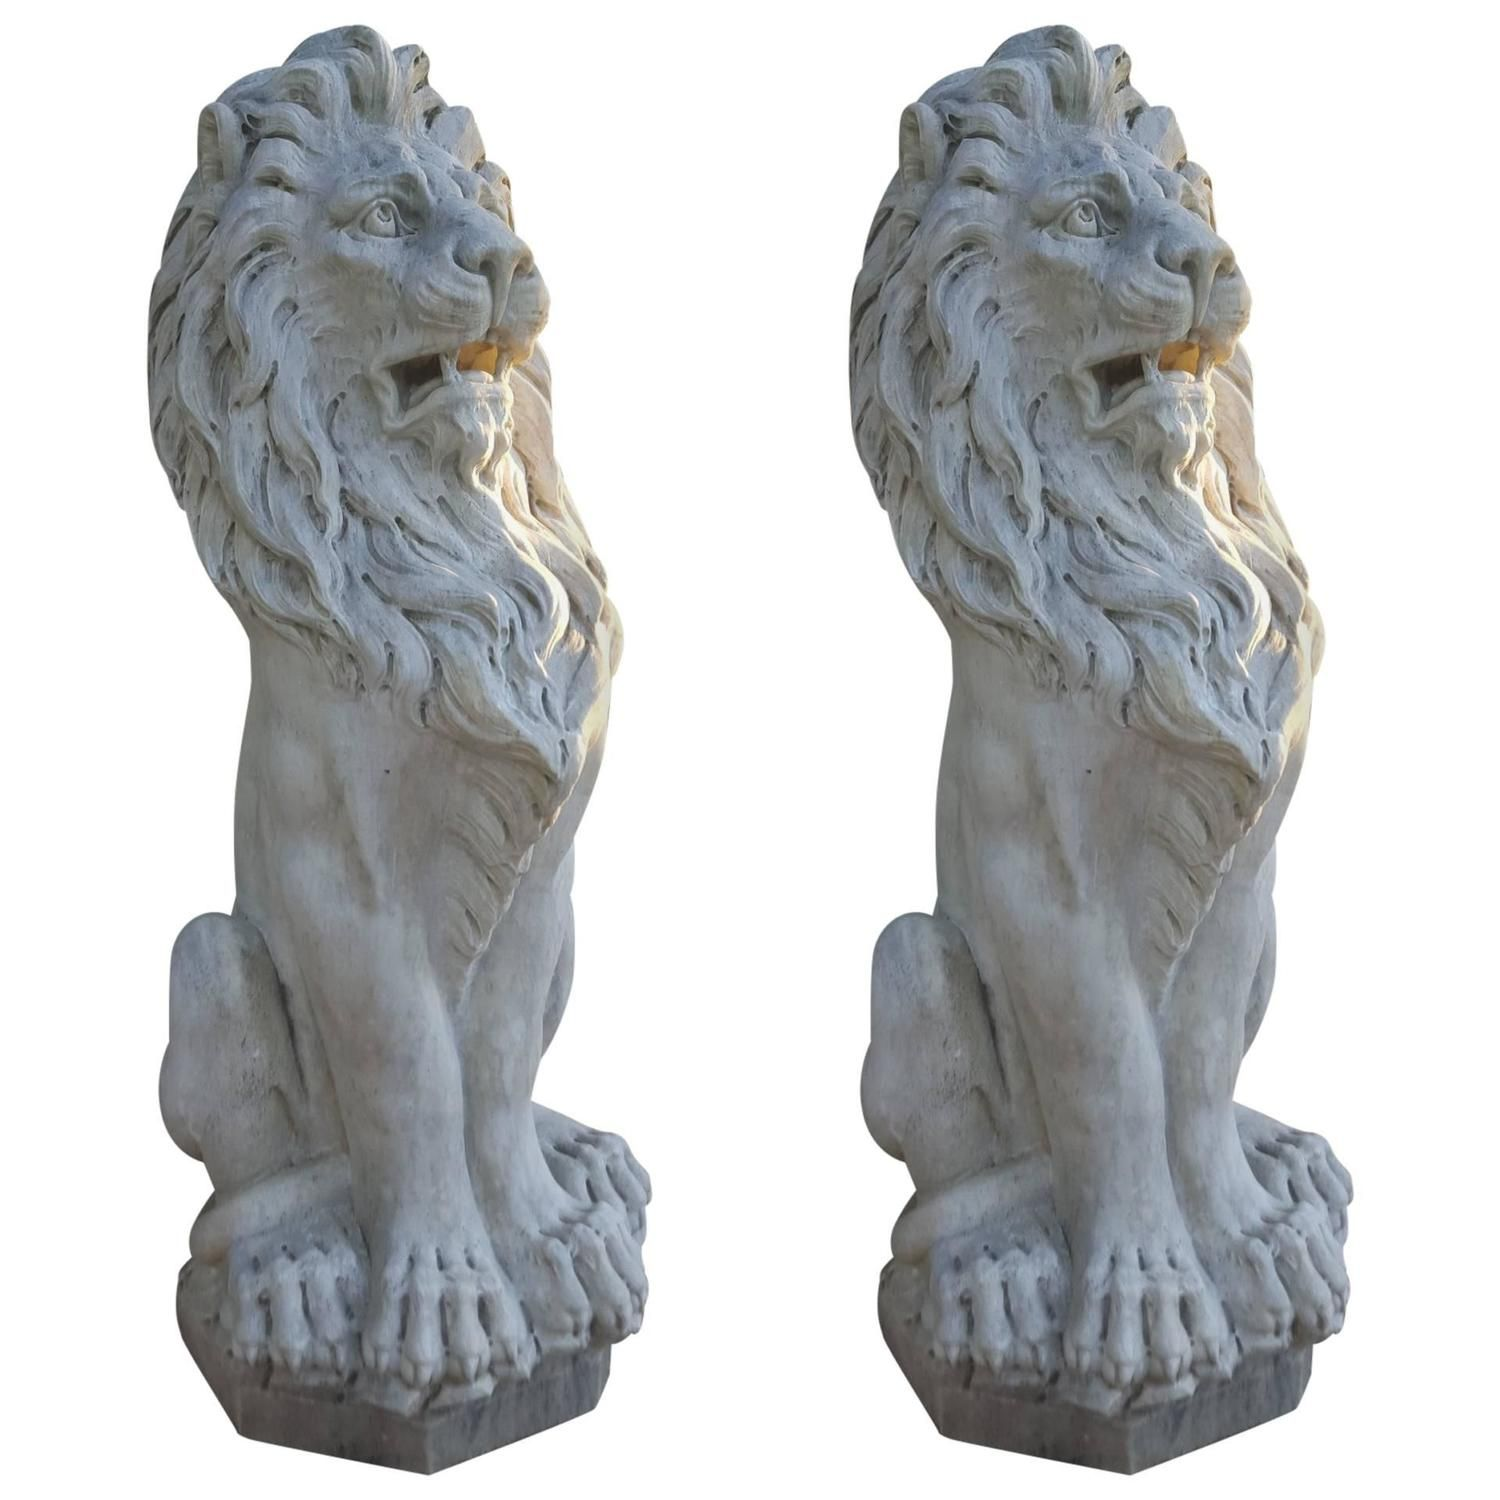 Lion Statue Pair Stone Hand Carved Sitting Entry Gate